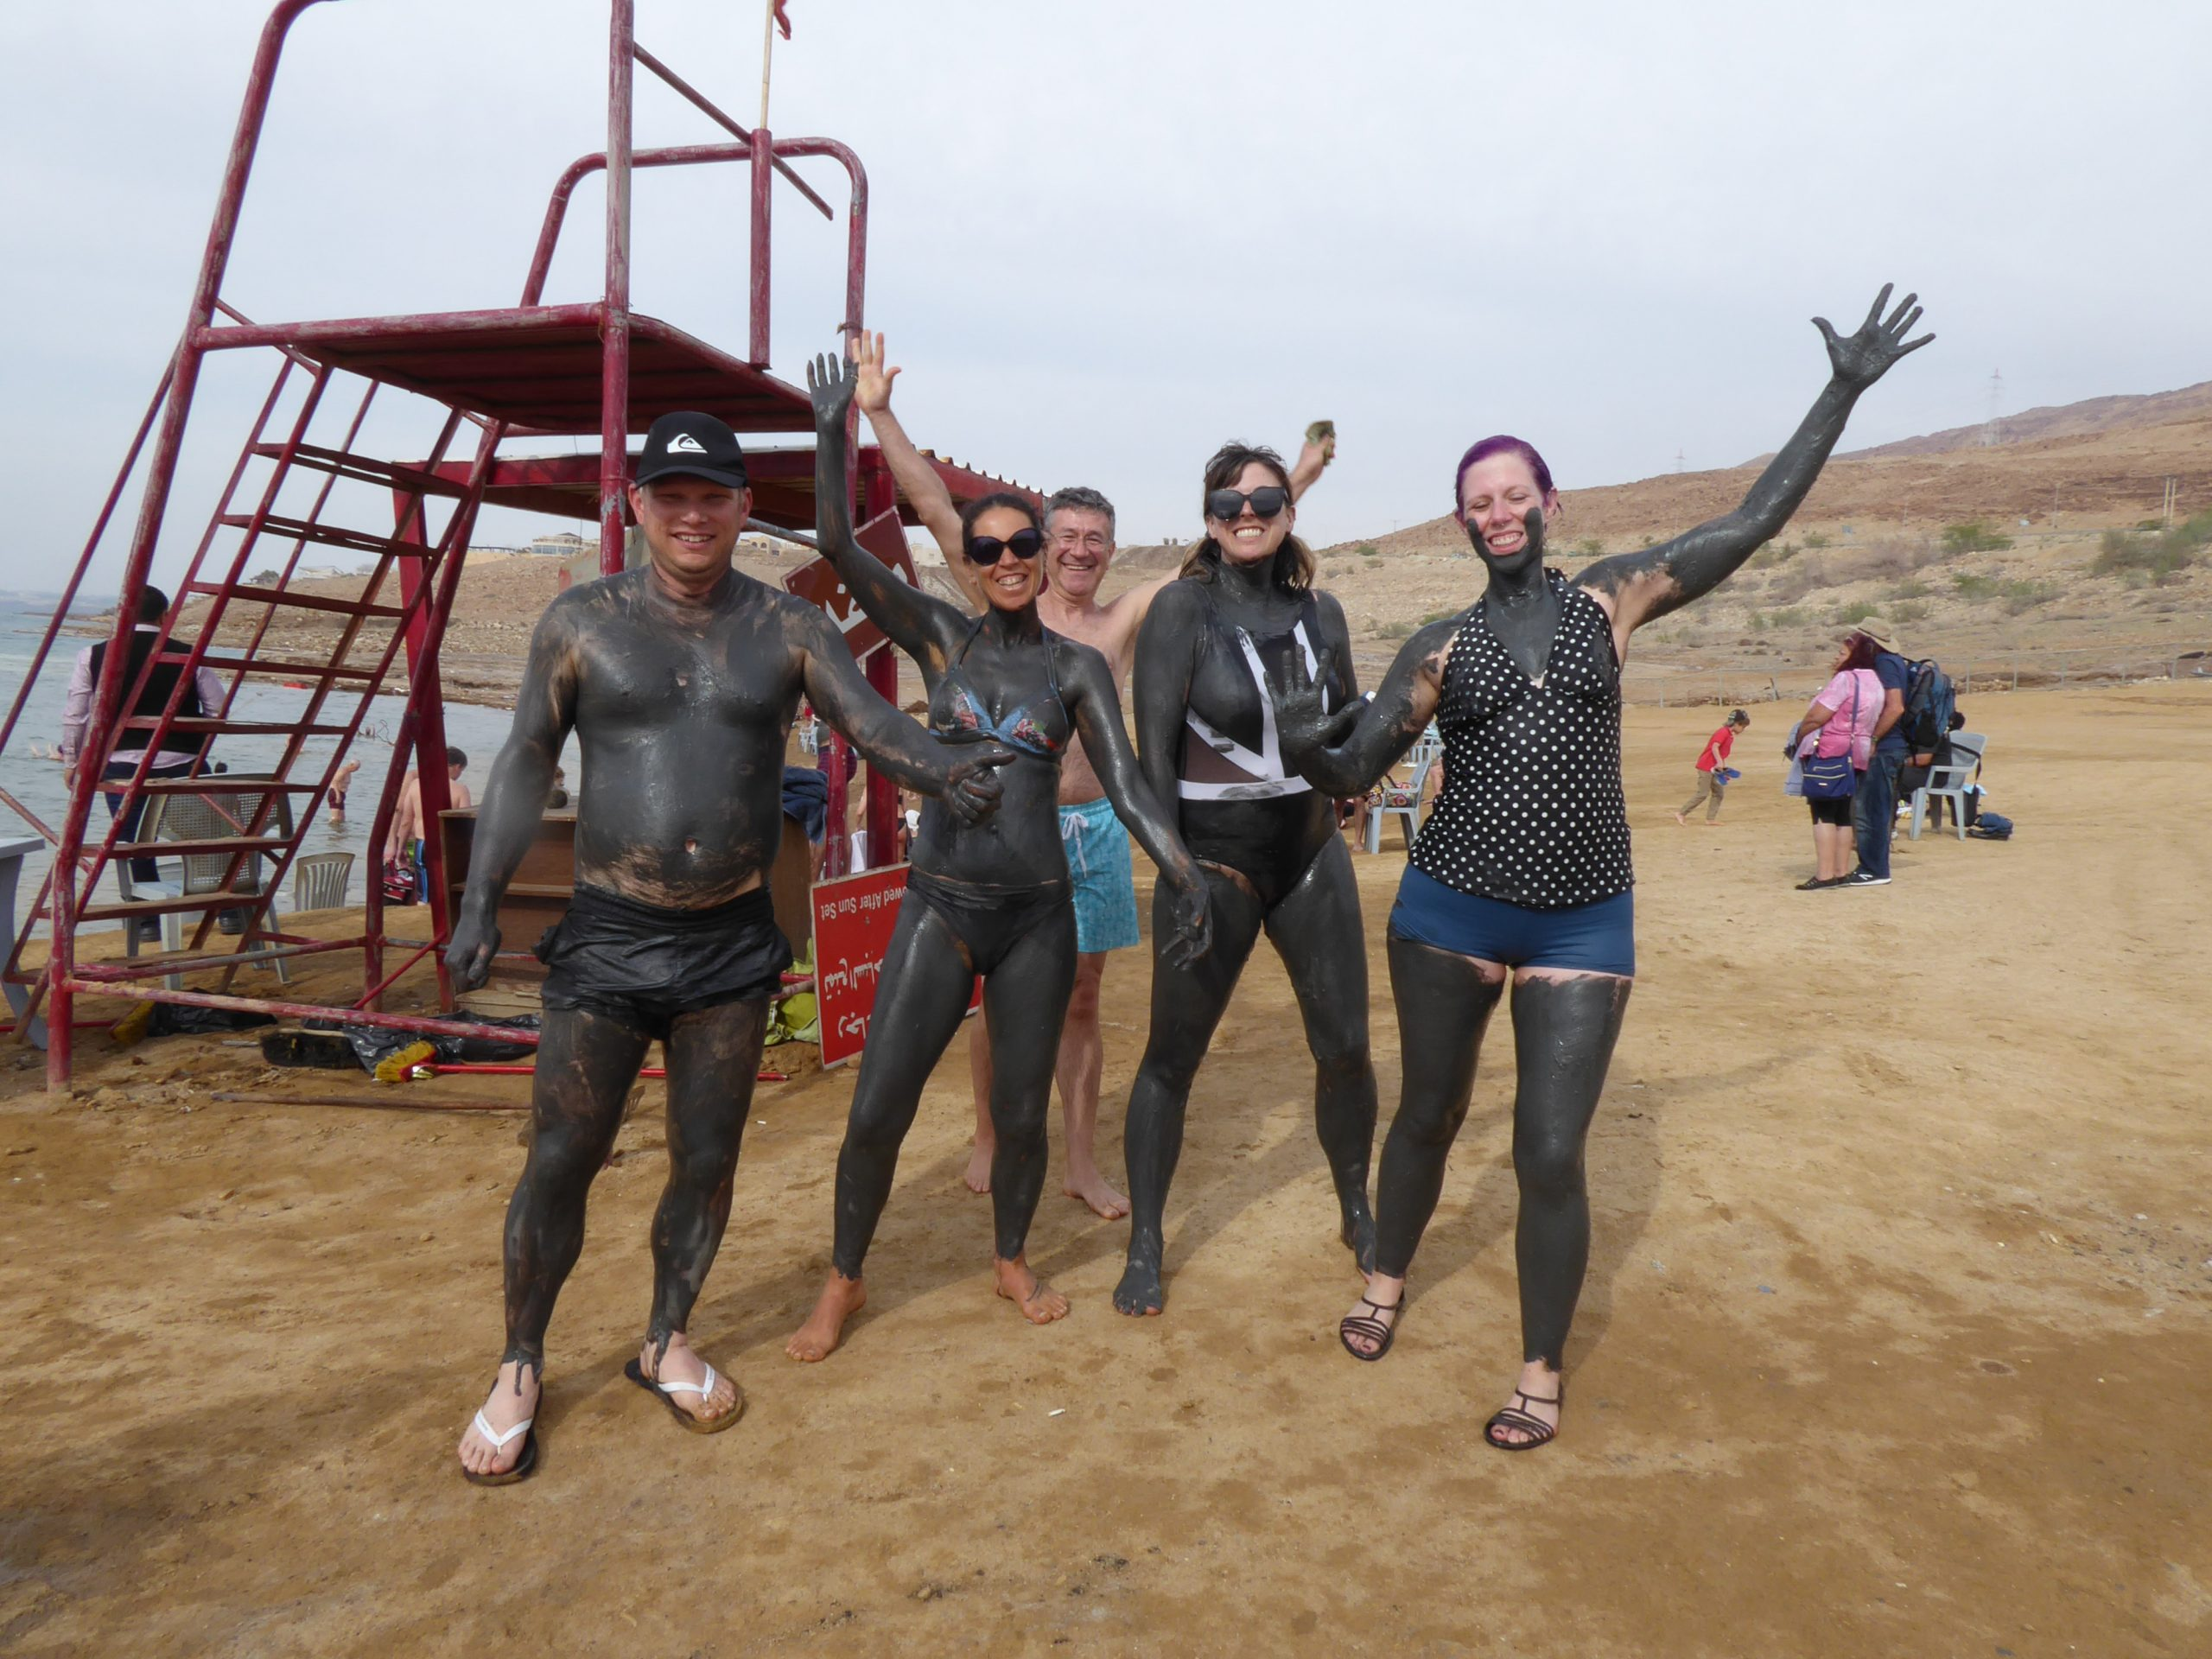 Covered in mud at the Dead Sea in Jordan